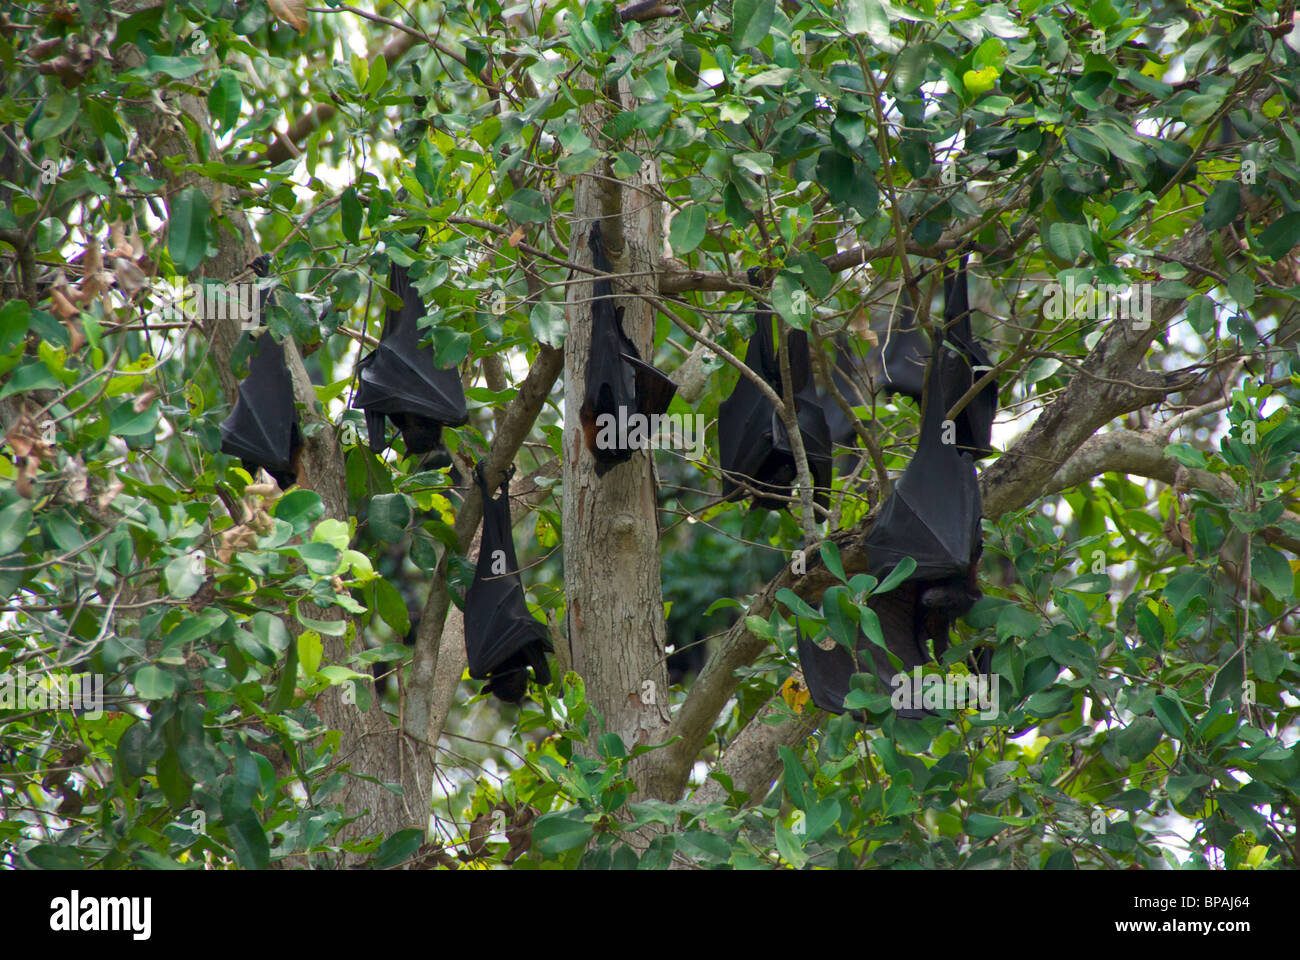 Black Flying Foxes (Pteropus alecto) resting upside-down by day at Wanji Falls, Litchfield National Park, Australia. Stock Photo